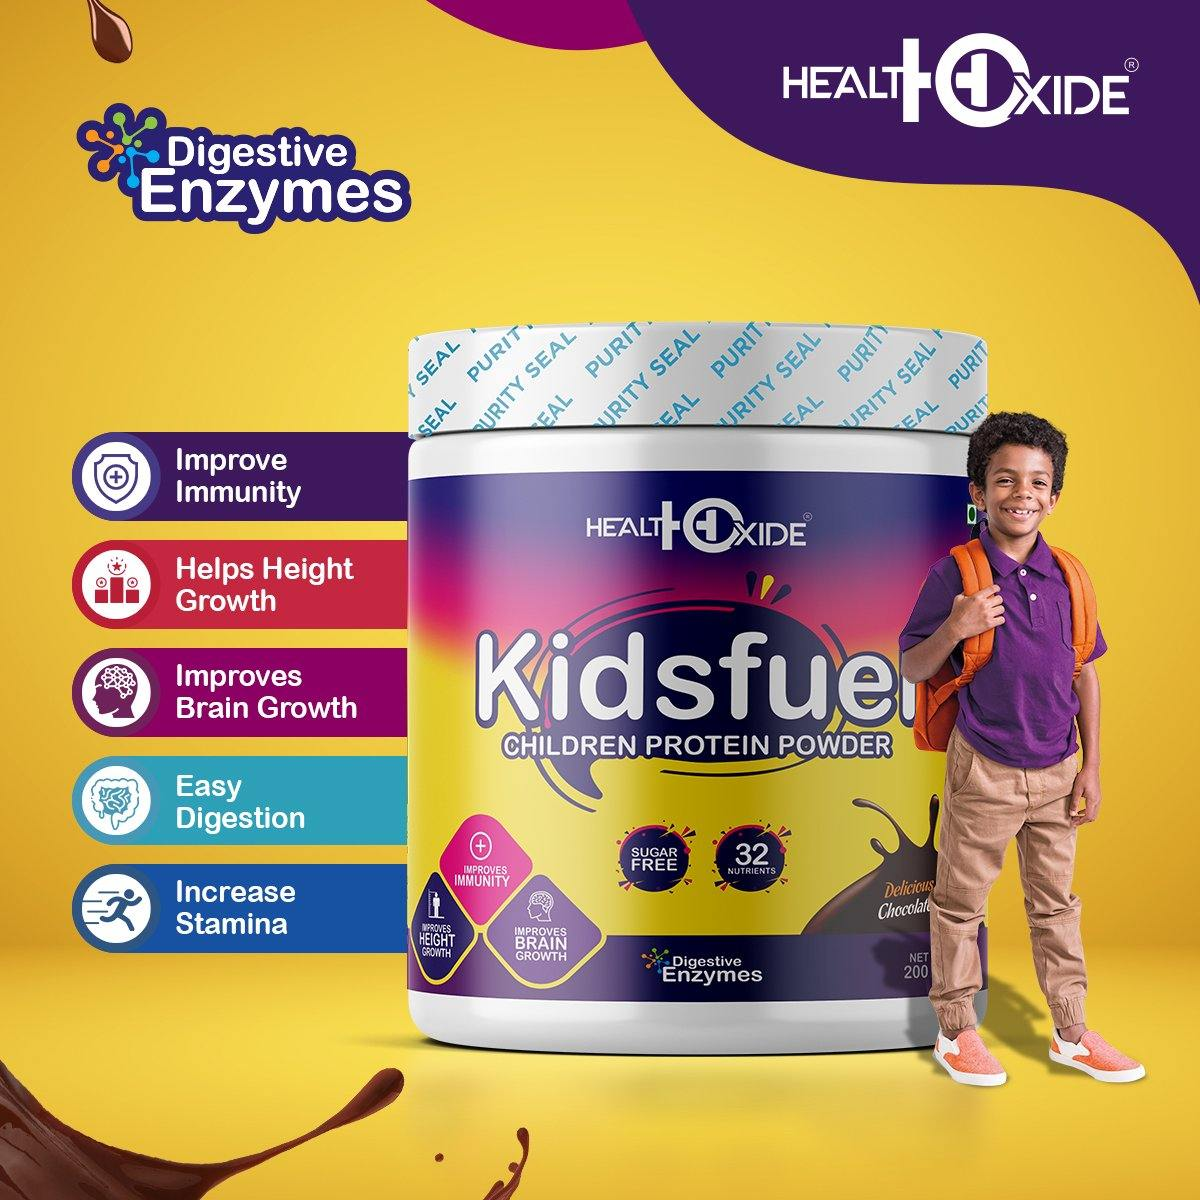 KIDSFUEL - High Protein Nutrition Drink Mix Powder for Child Growth – (200g, Chocolate Flavor) - HealthOxide